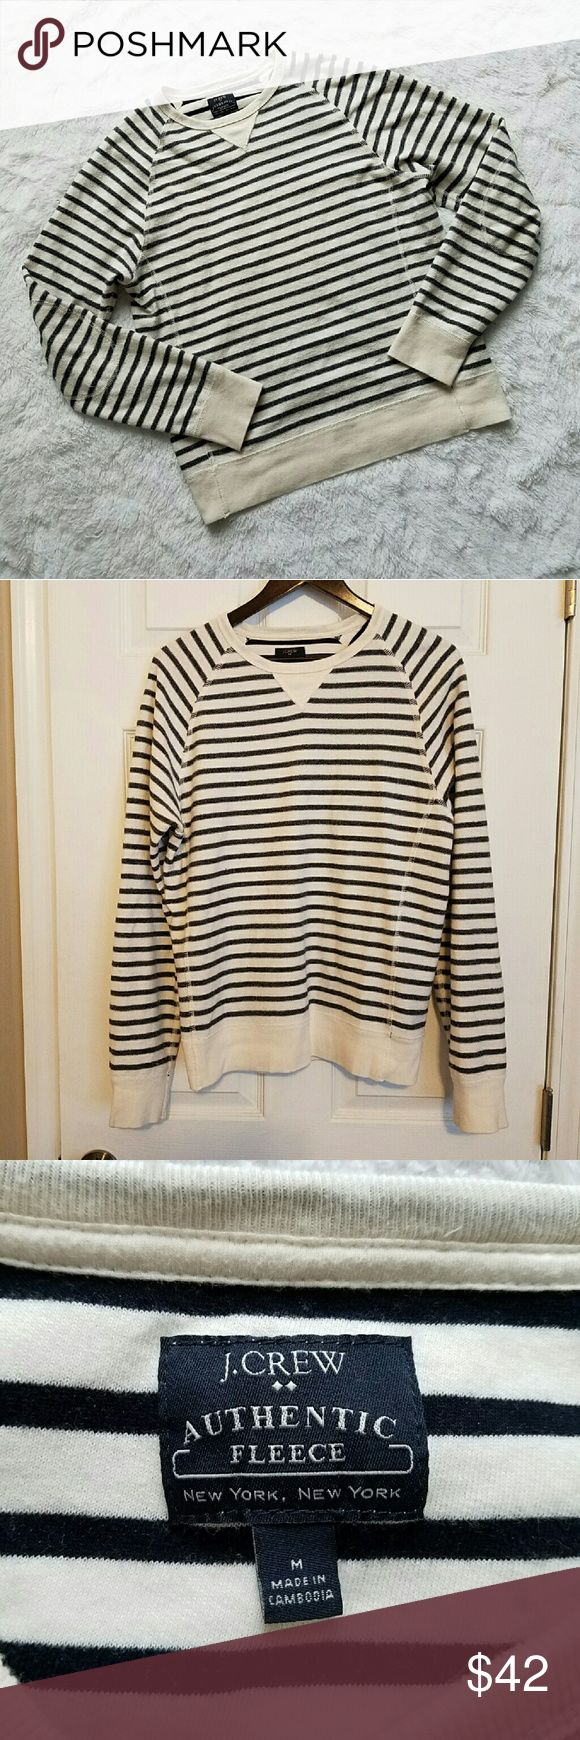 """{J. Crew} Striped Fleece Nautical Sweatshirt Cozy J. Crew """"Authentic Fleece"""" nautical striped sweatshirt. Navy blue and cream white. Cool stitched elbow pads details. Thermal inside-out sweatshirt feel. Long sleeved. Cool on its own or layered!  White cuffs, crewneck collar, and bottom hem. TTS Medium, with a bit of added slouchiness for comfort. Great used condition.  ***20% off bundle discounts   Reasonable offers welcome!   NO TRADES   No modeling*** Tops Sweatshirts & Hoodies"""